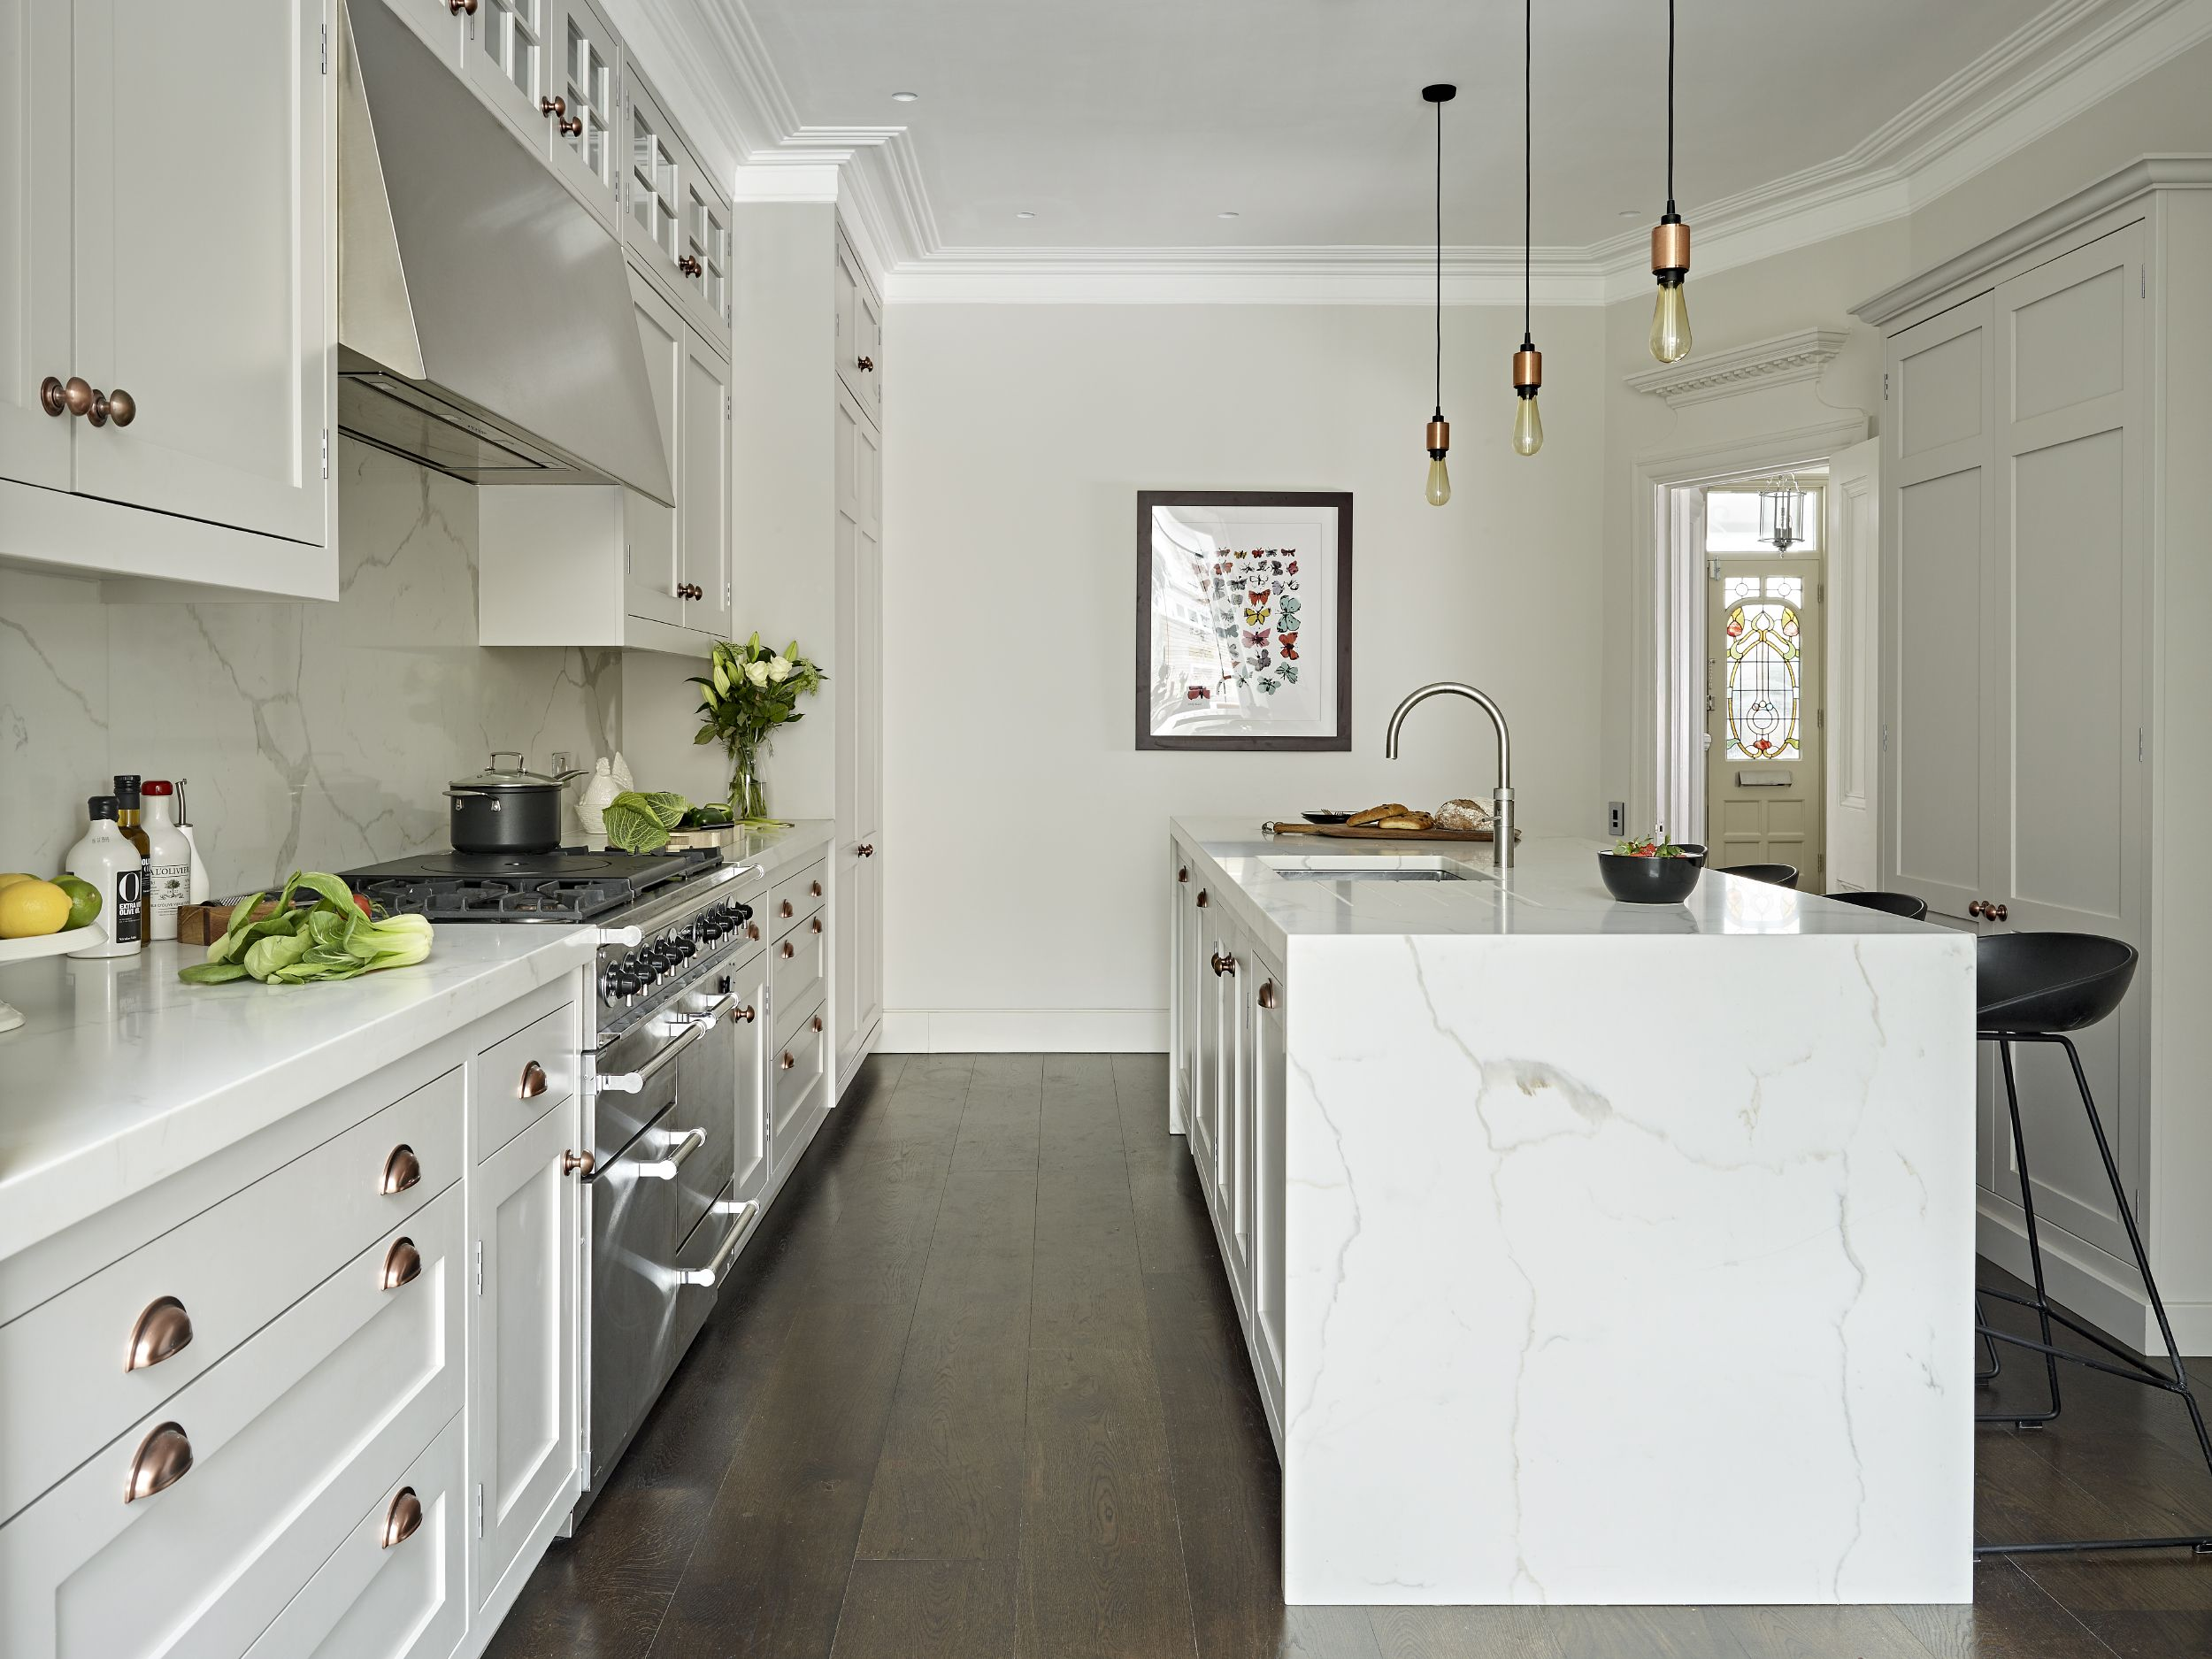 Putney Victorian House | Shaker kitchen cabinets, Shaker kitchen and ...